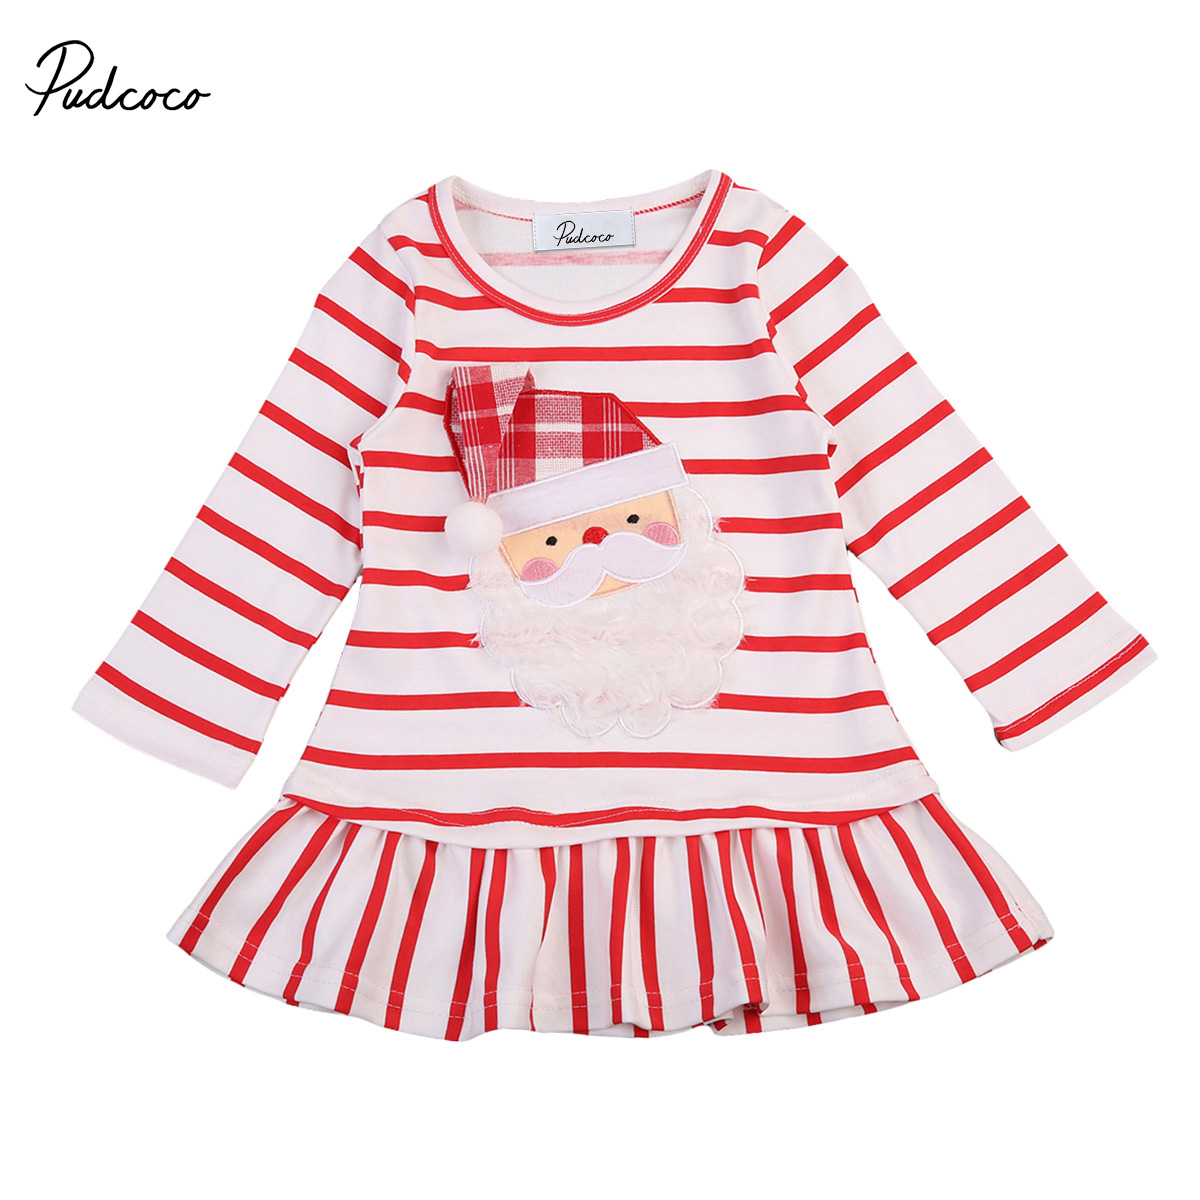 Toddler Newborn Baby Girls Christmas Dress Long Sleeve Striped Patchwork Mini Dress Cute Infant Clothes